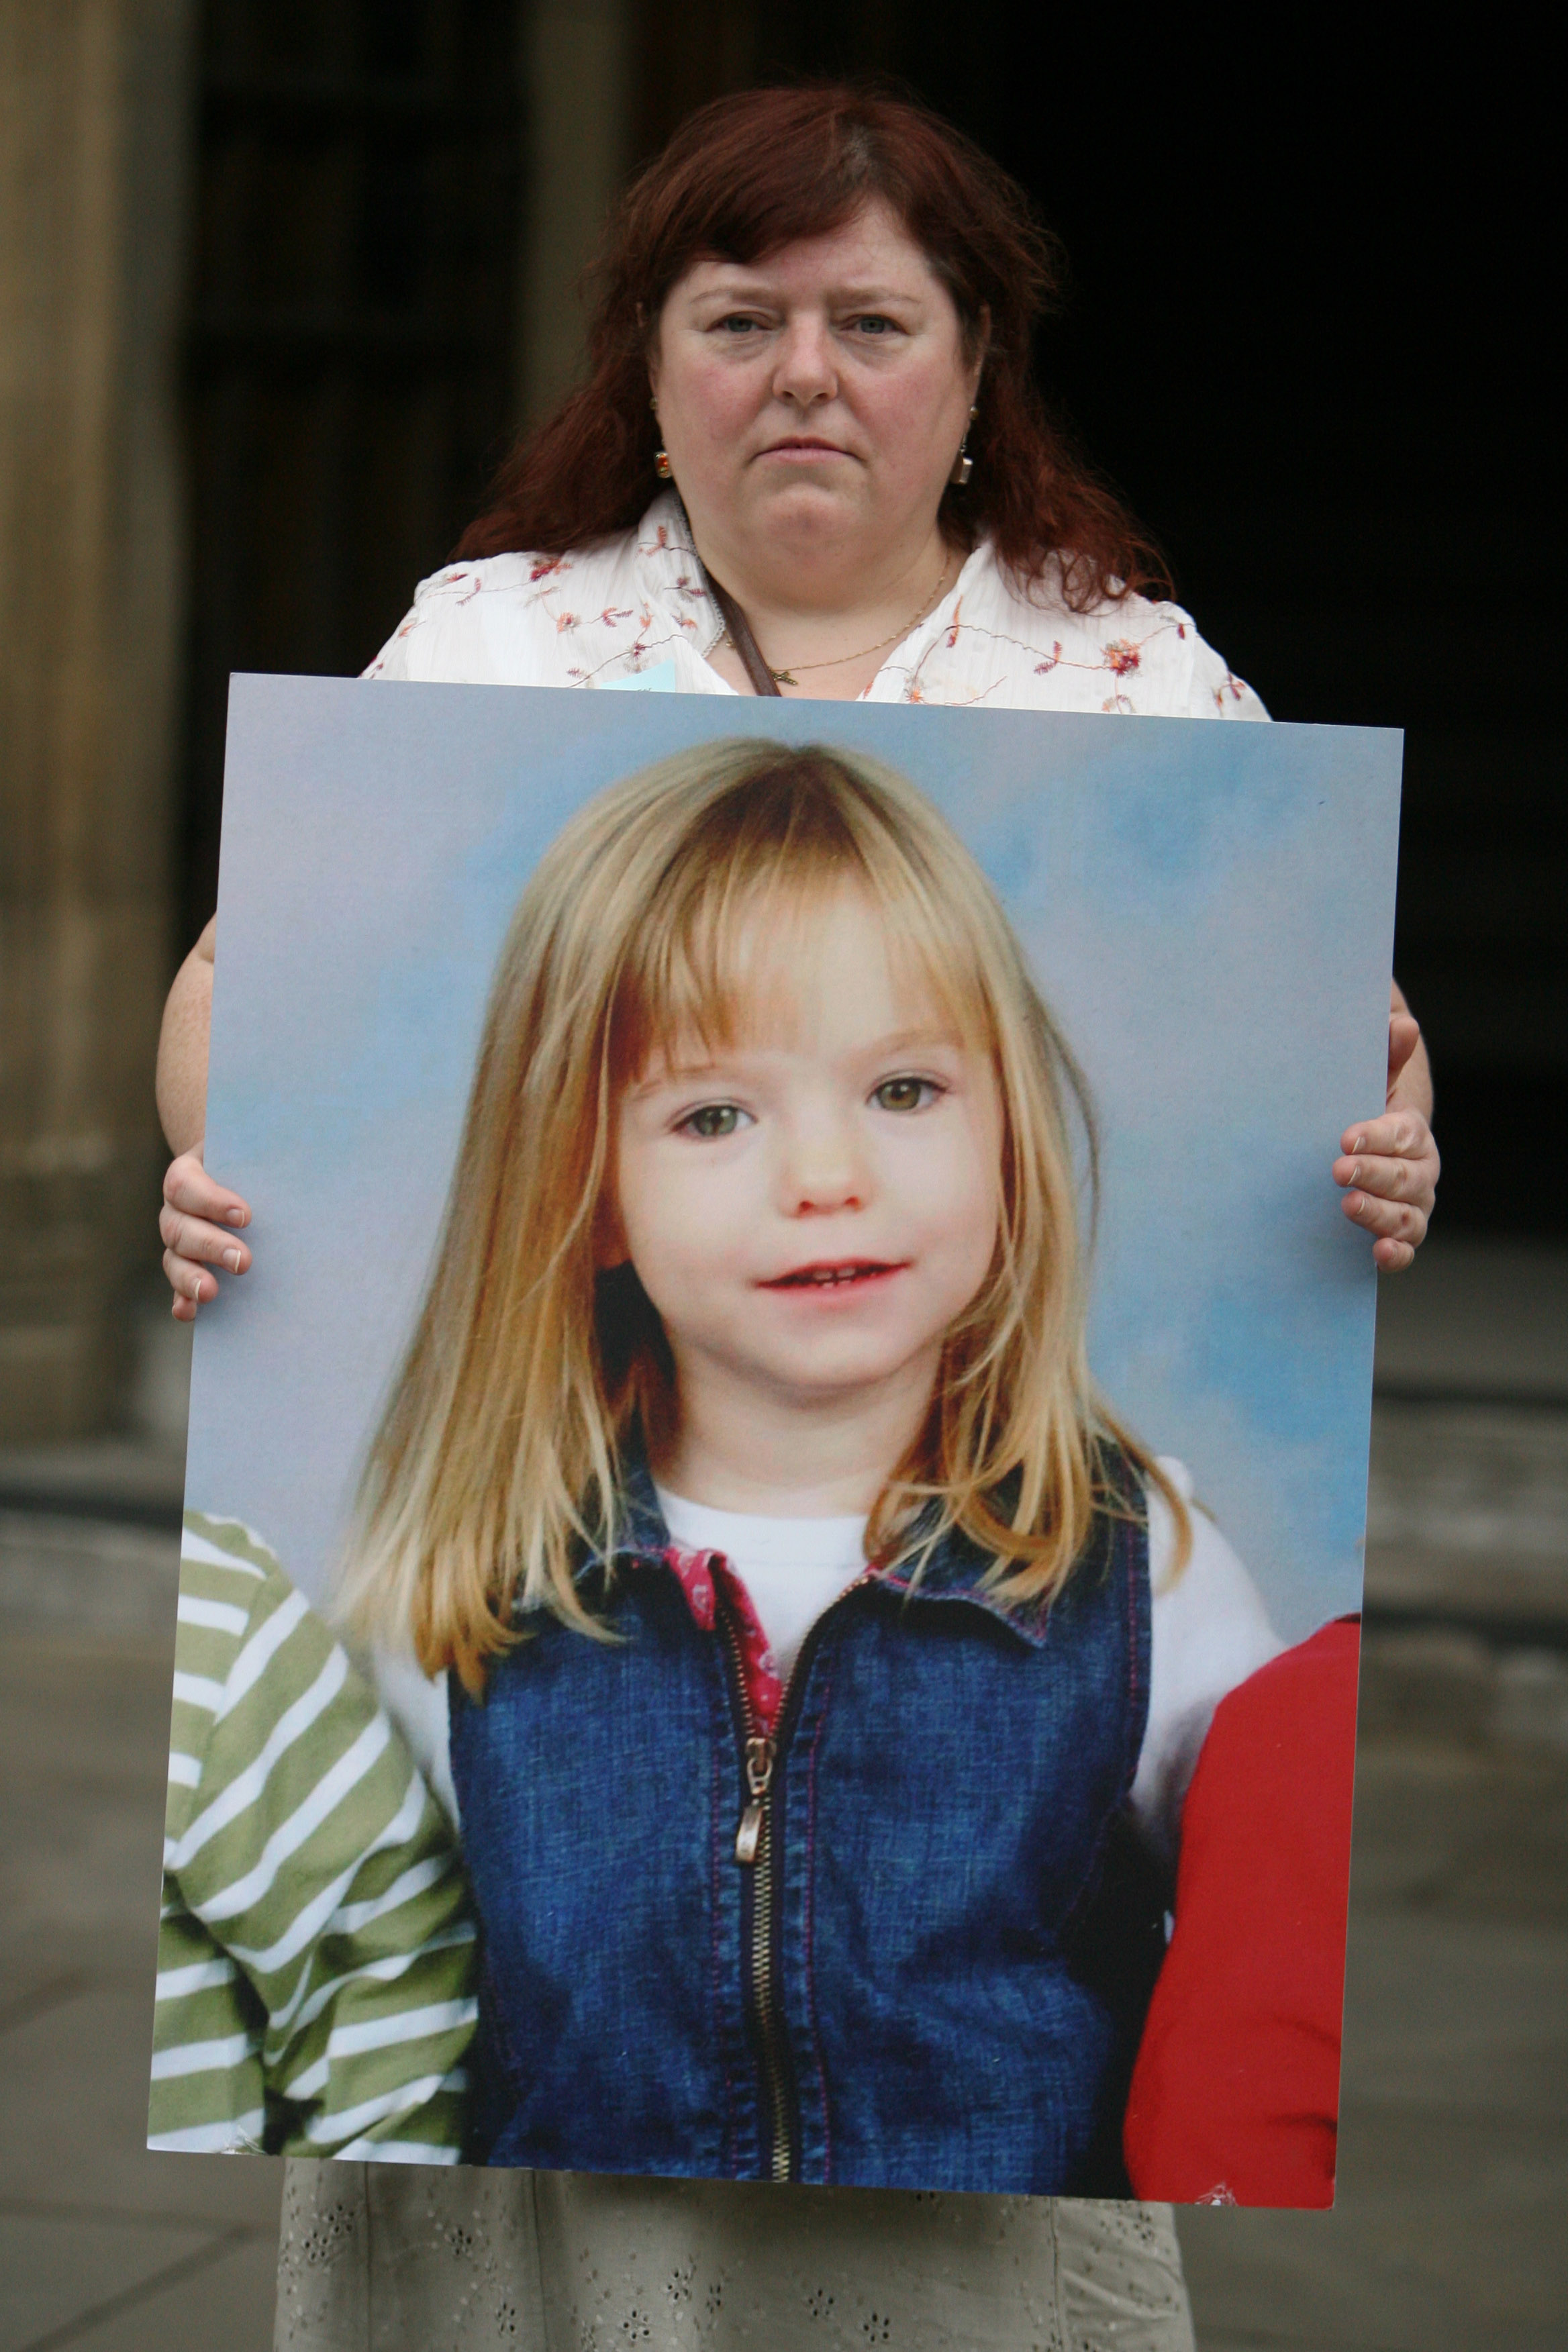 Phil McCann carries a picture of her missing niece Madeleine McCann as she visits Parliament on May 16, 2007 in London. Madeleine McCann disappeared from a holiday complex in Praia da Luz 13 days ago.